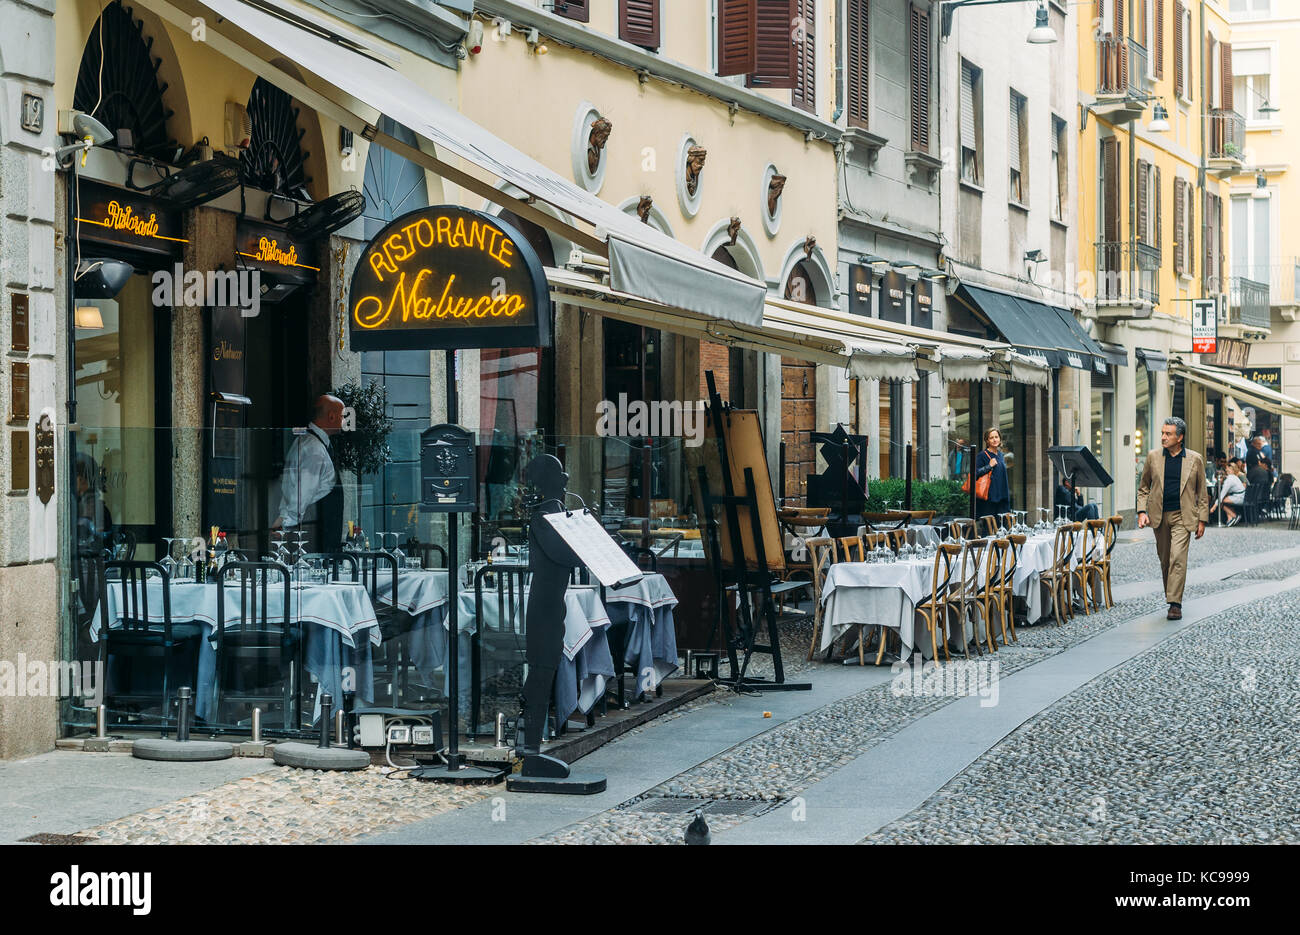 a-restaurant-in-the-fashionable-milan-italy-district-of-brera-at-aperitivo-KC9999.jpg